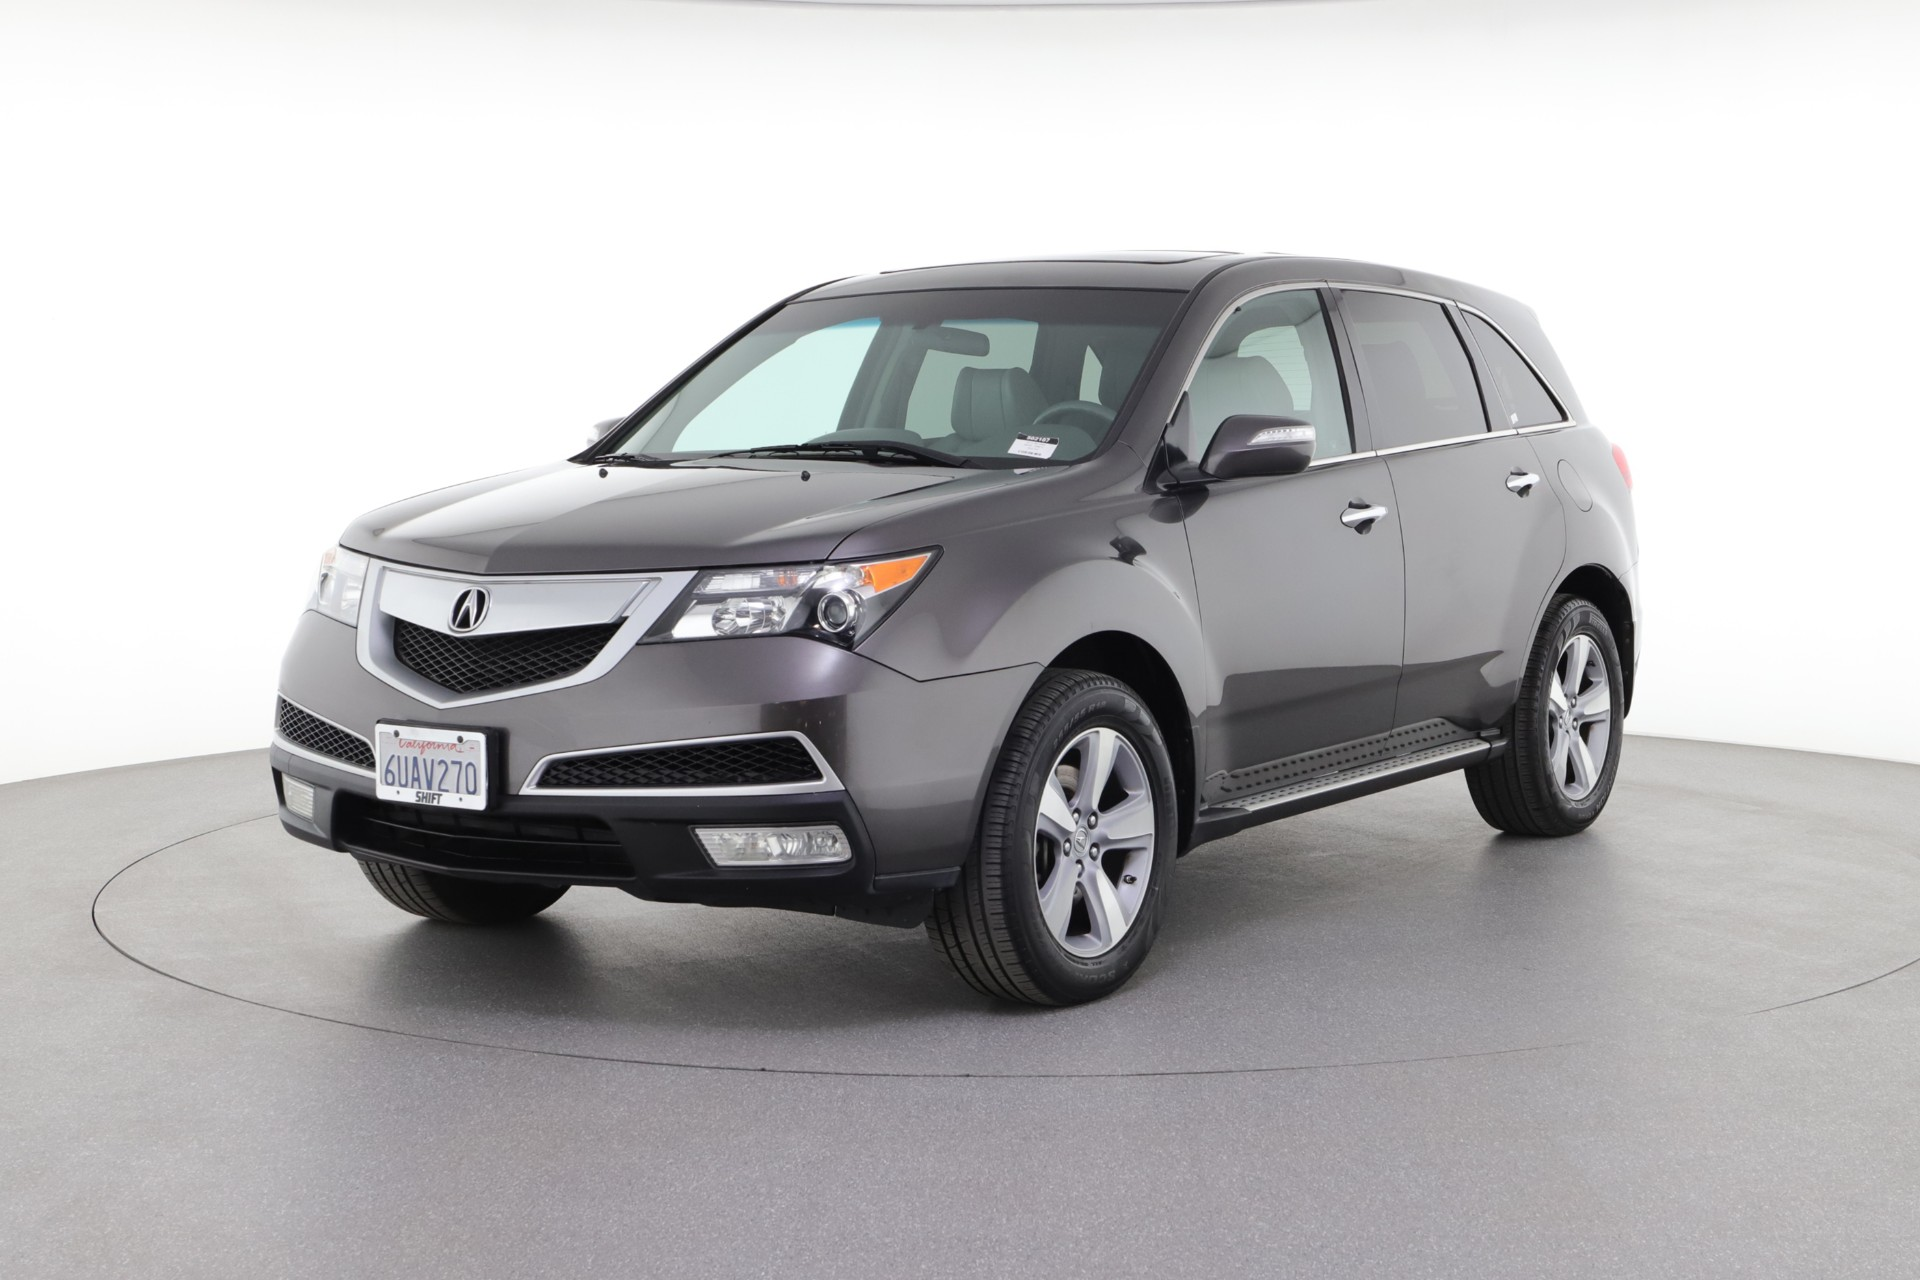 2012 Acura MDX (from $14,950)